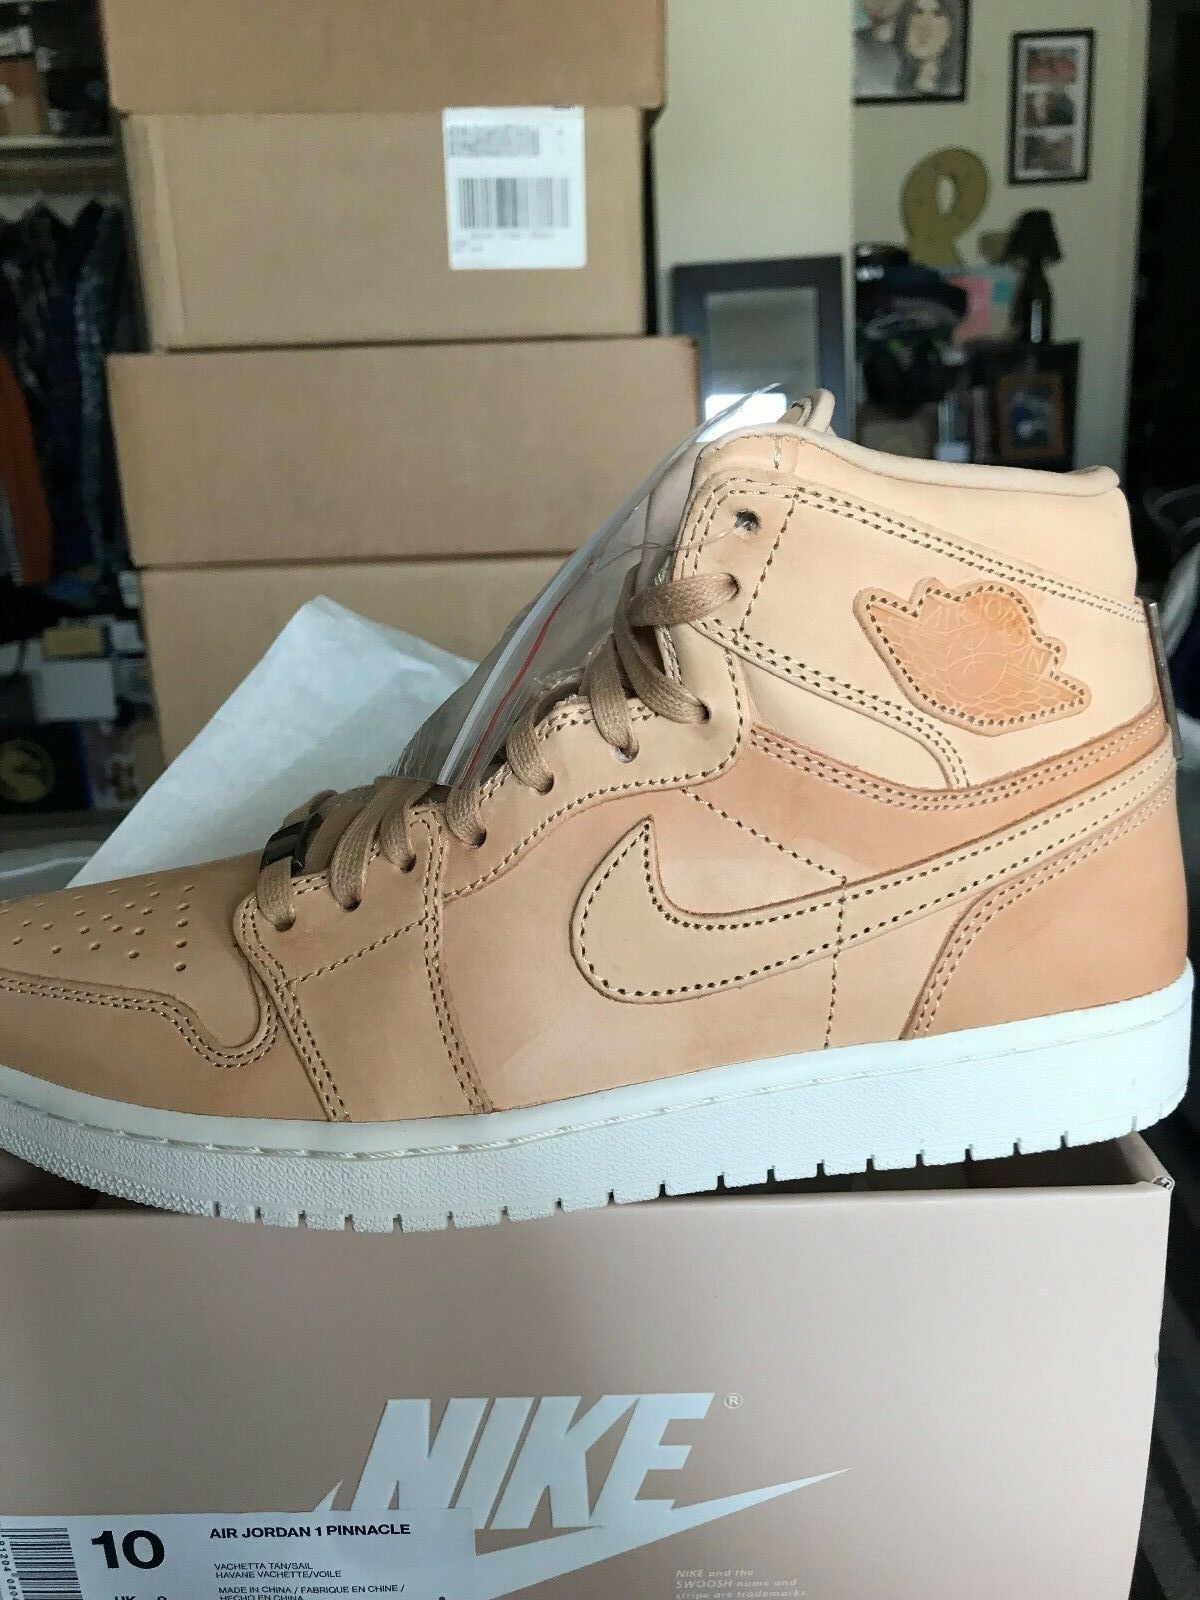 Jordan 1 Retro Pinnacle Vachetta Tan